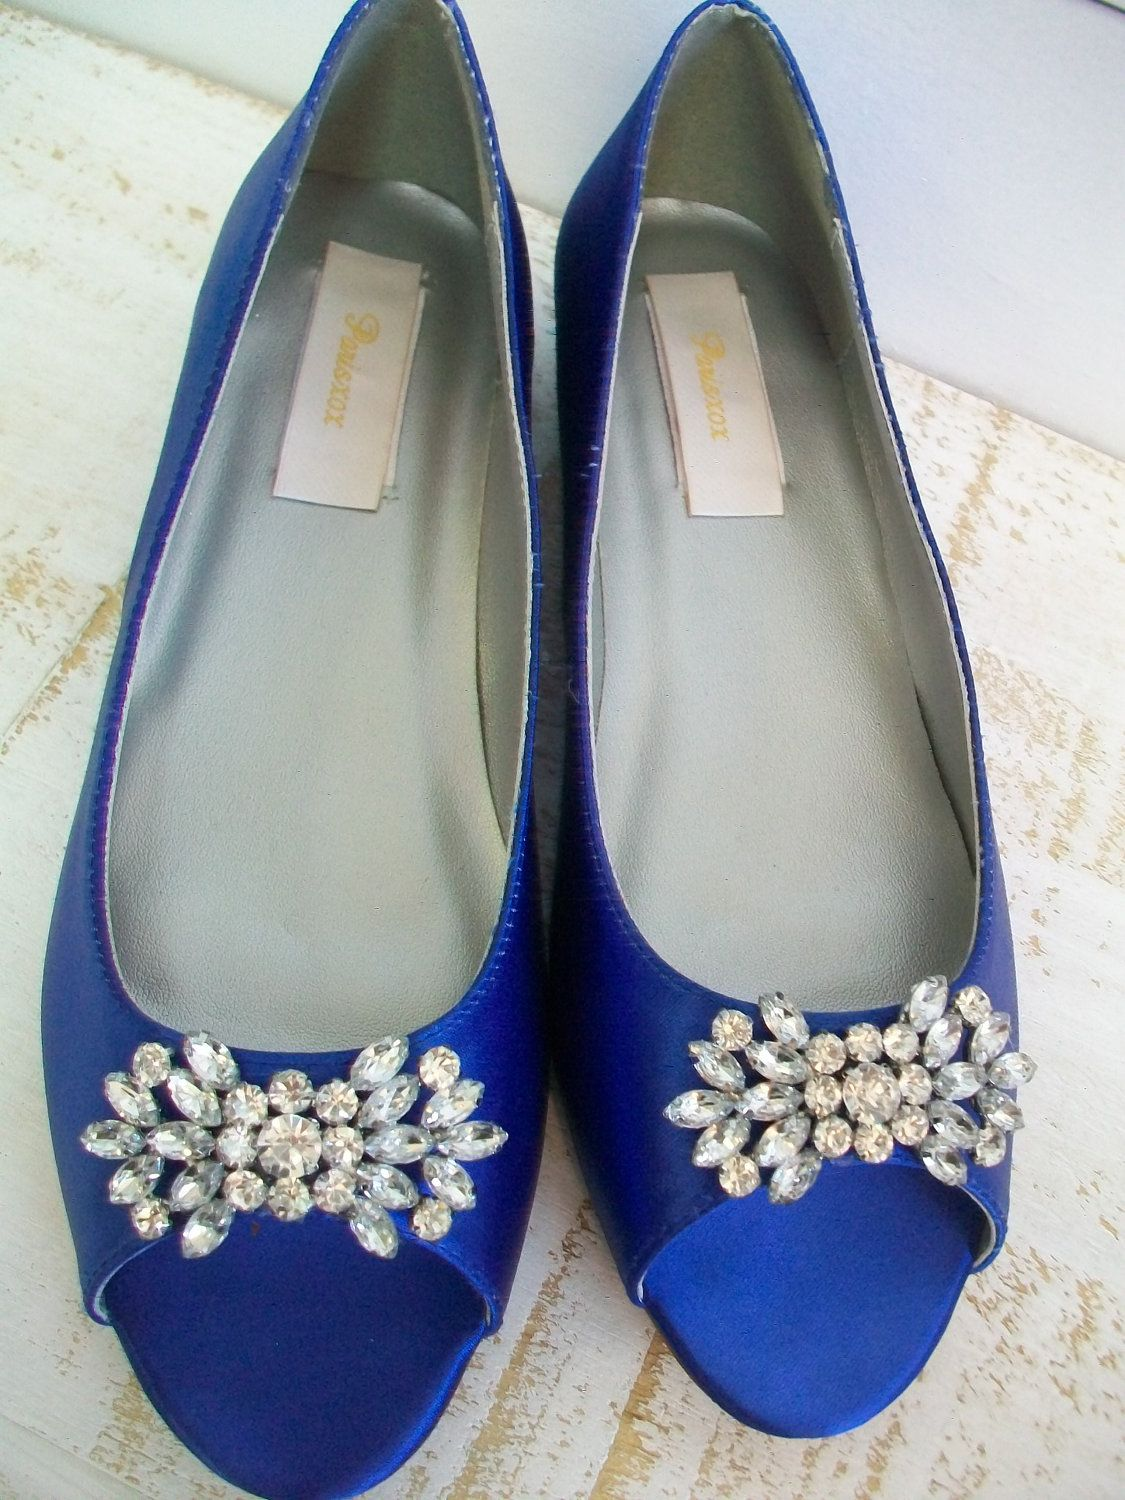 Blue Shoes 1 2 Inch Flat Peep Toe Crystal Bling Flats Over 100 Colors Sapphire Blue Something Blue Bridesmaid Shoes Flat Wedding Shoes Flats Blue Wedding Shoes